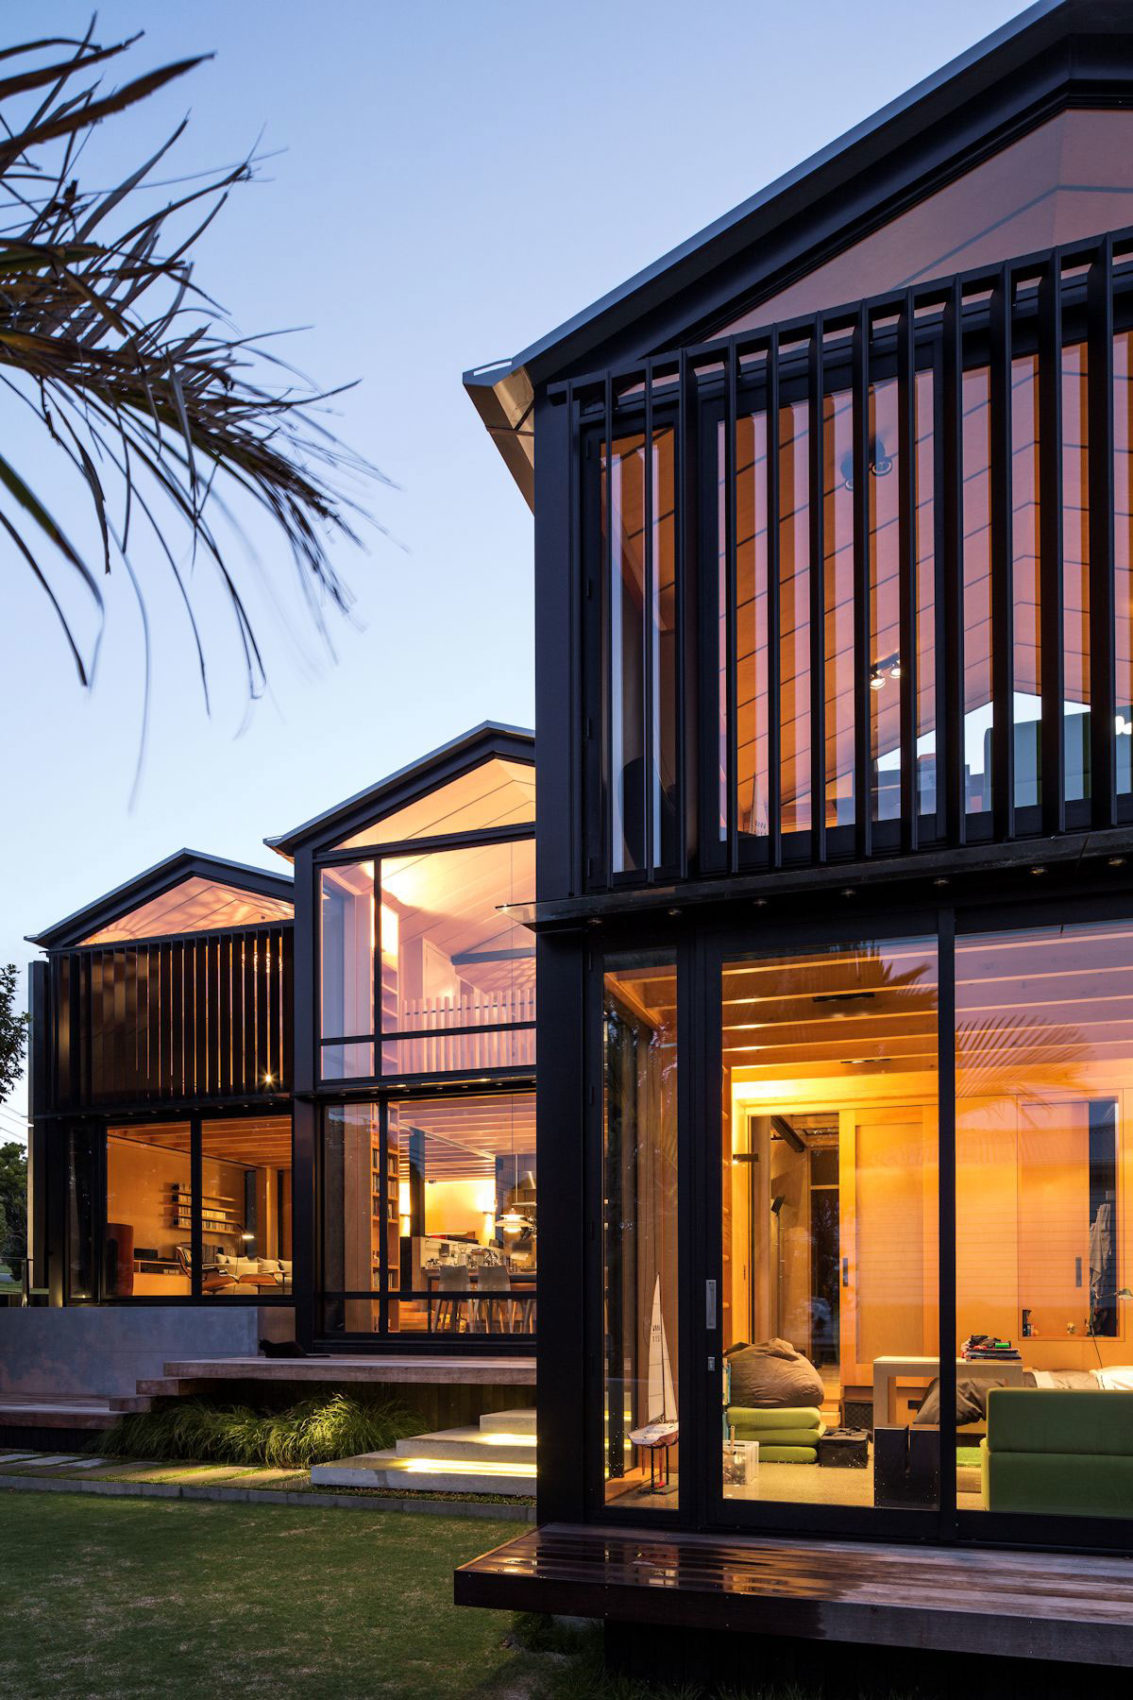 Boatsheds by Strachan Group Arch & Rachael Rush (19)